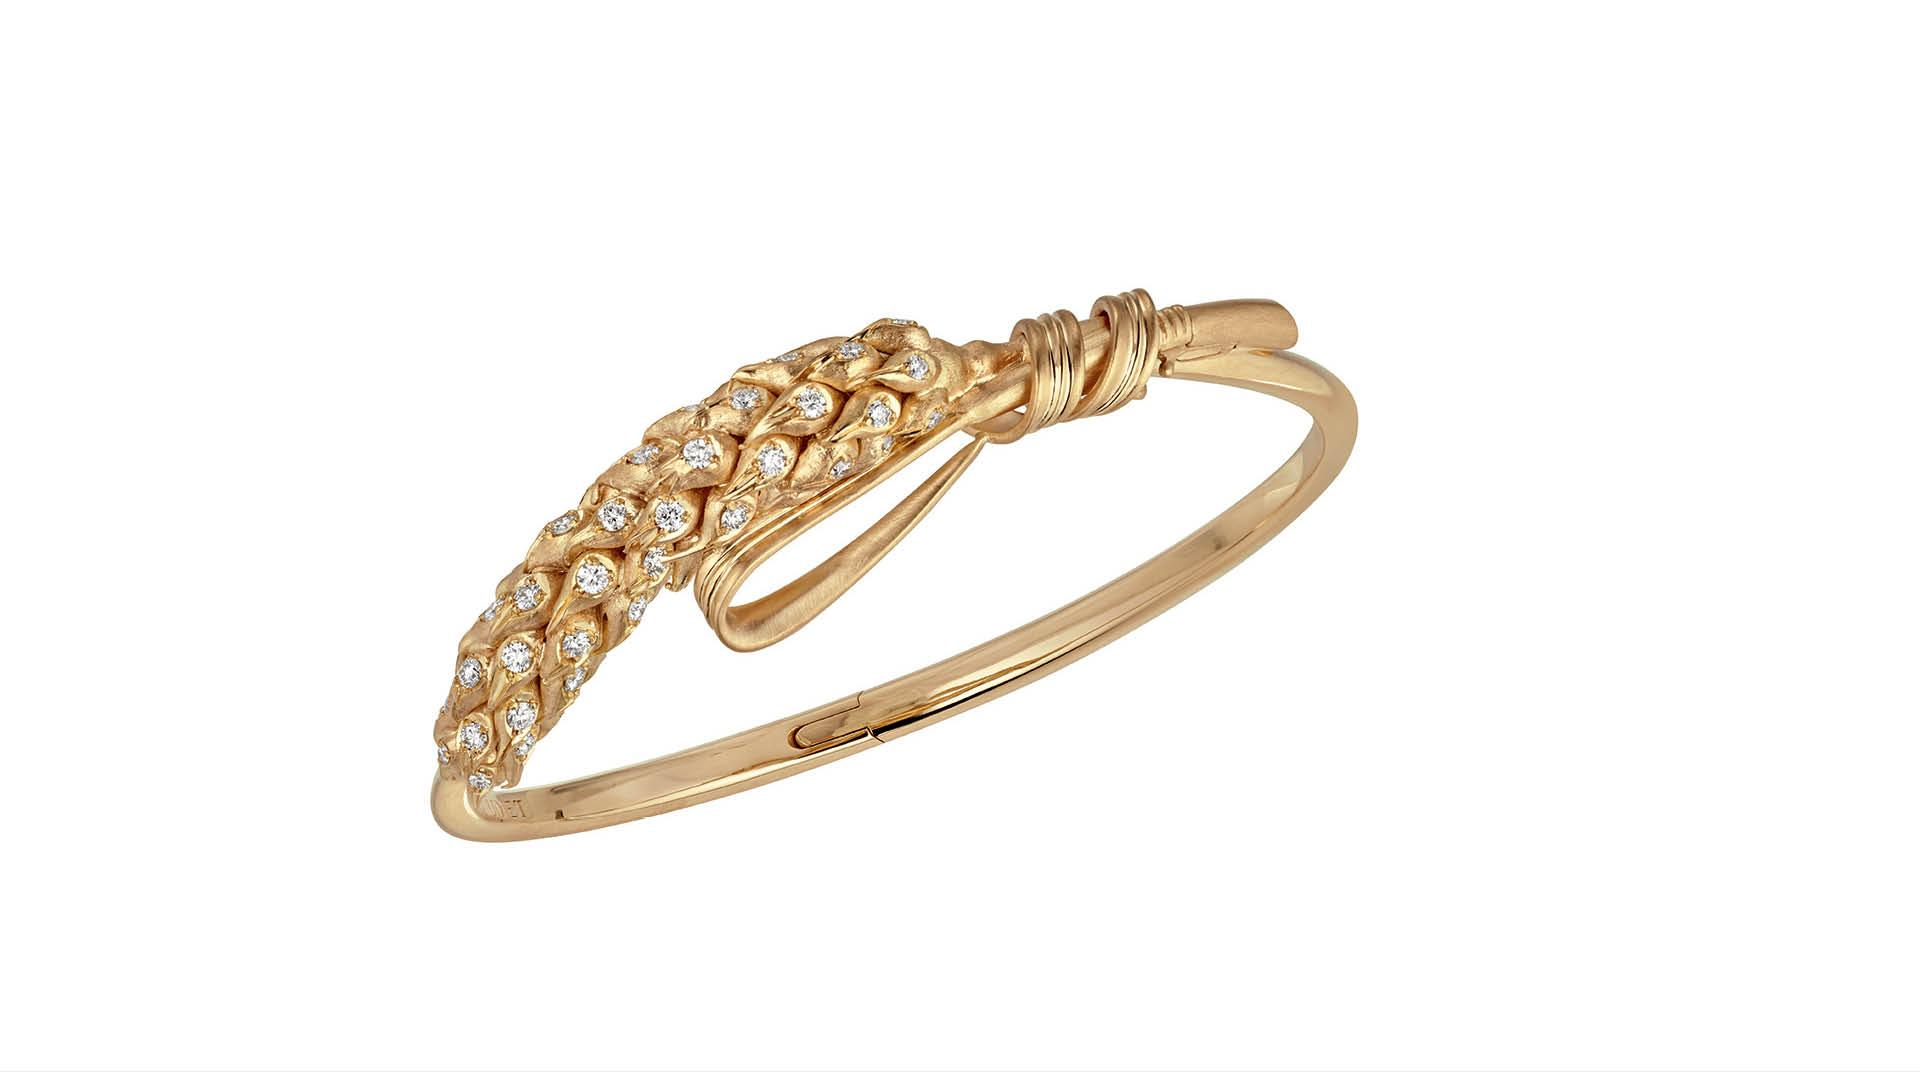 Chaumet Wheat Inspired Bracelet